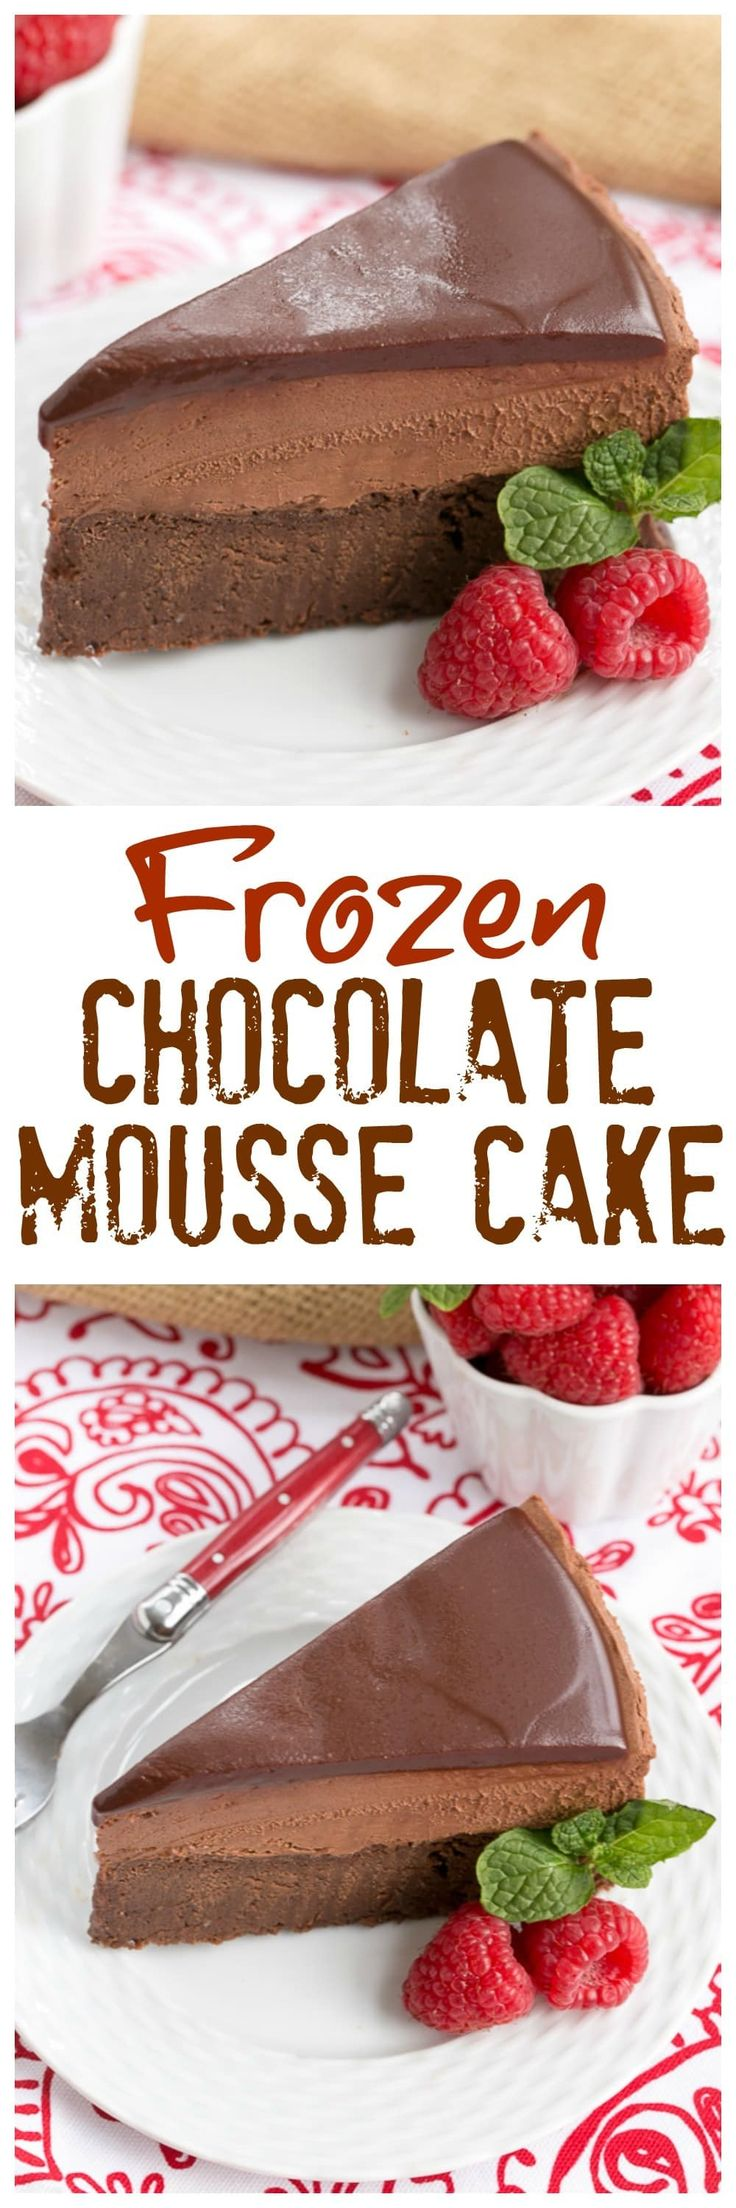 Frozen Chocolate Mousse Cake | A swoon worthy chocolate dessert! @lizzydo